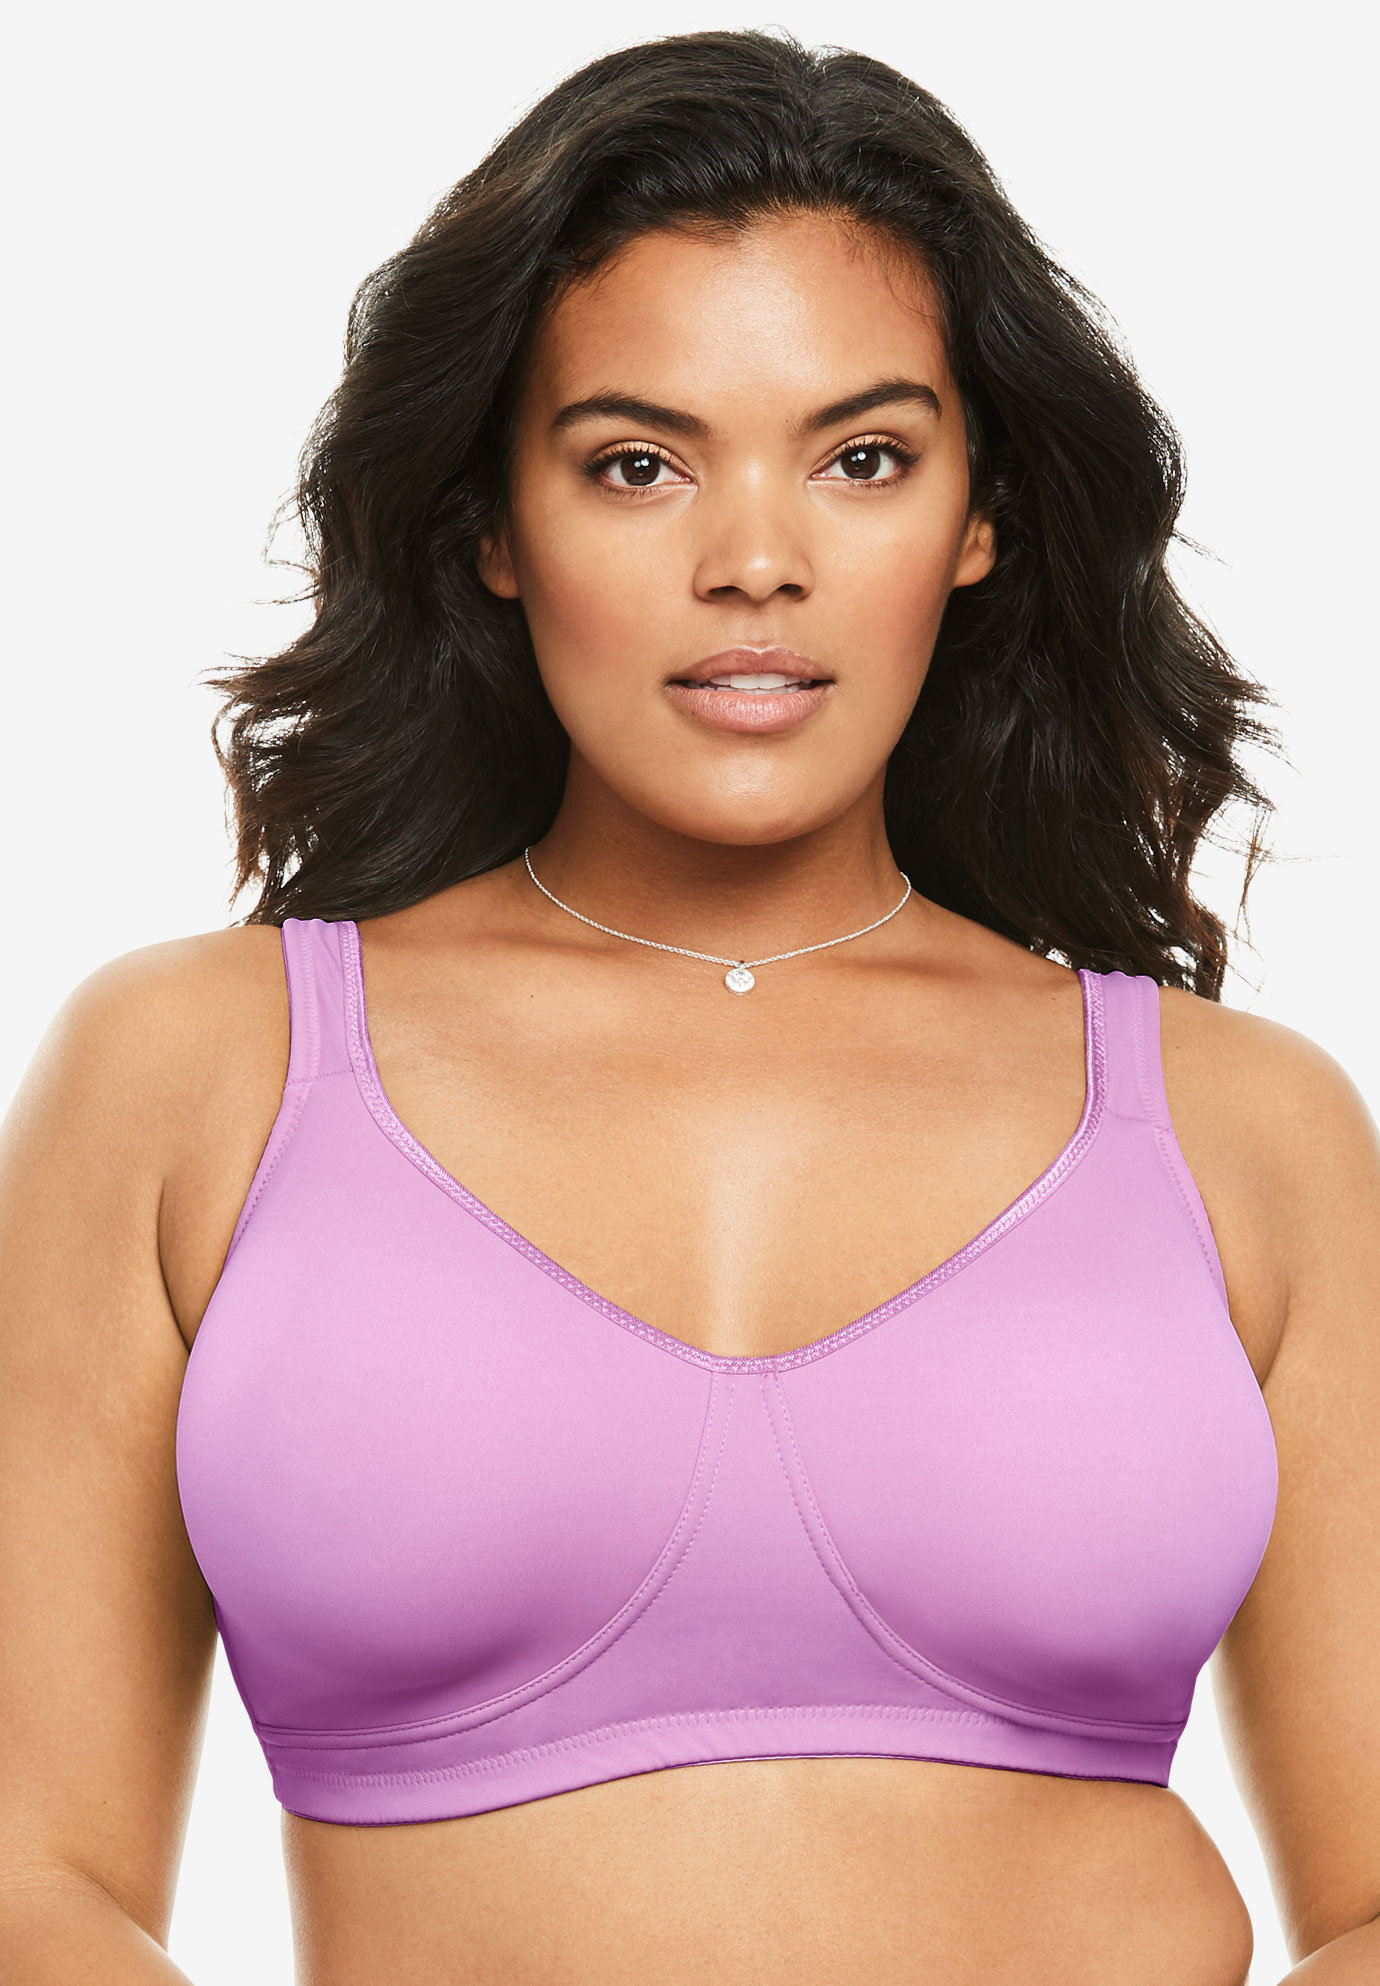 Unlined Wireless Bra by Comfort Choice®,